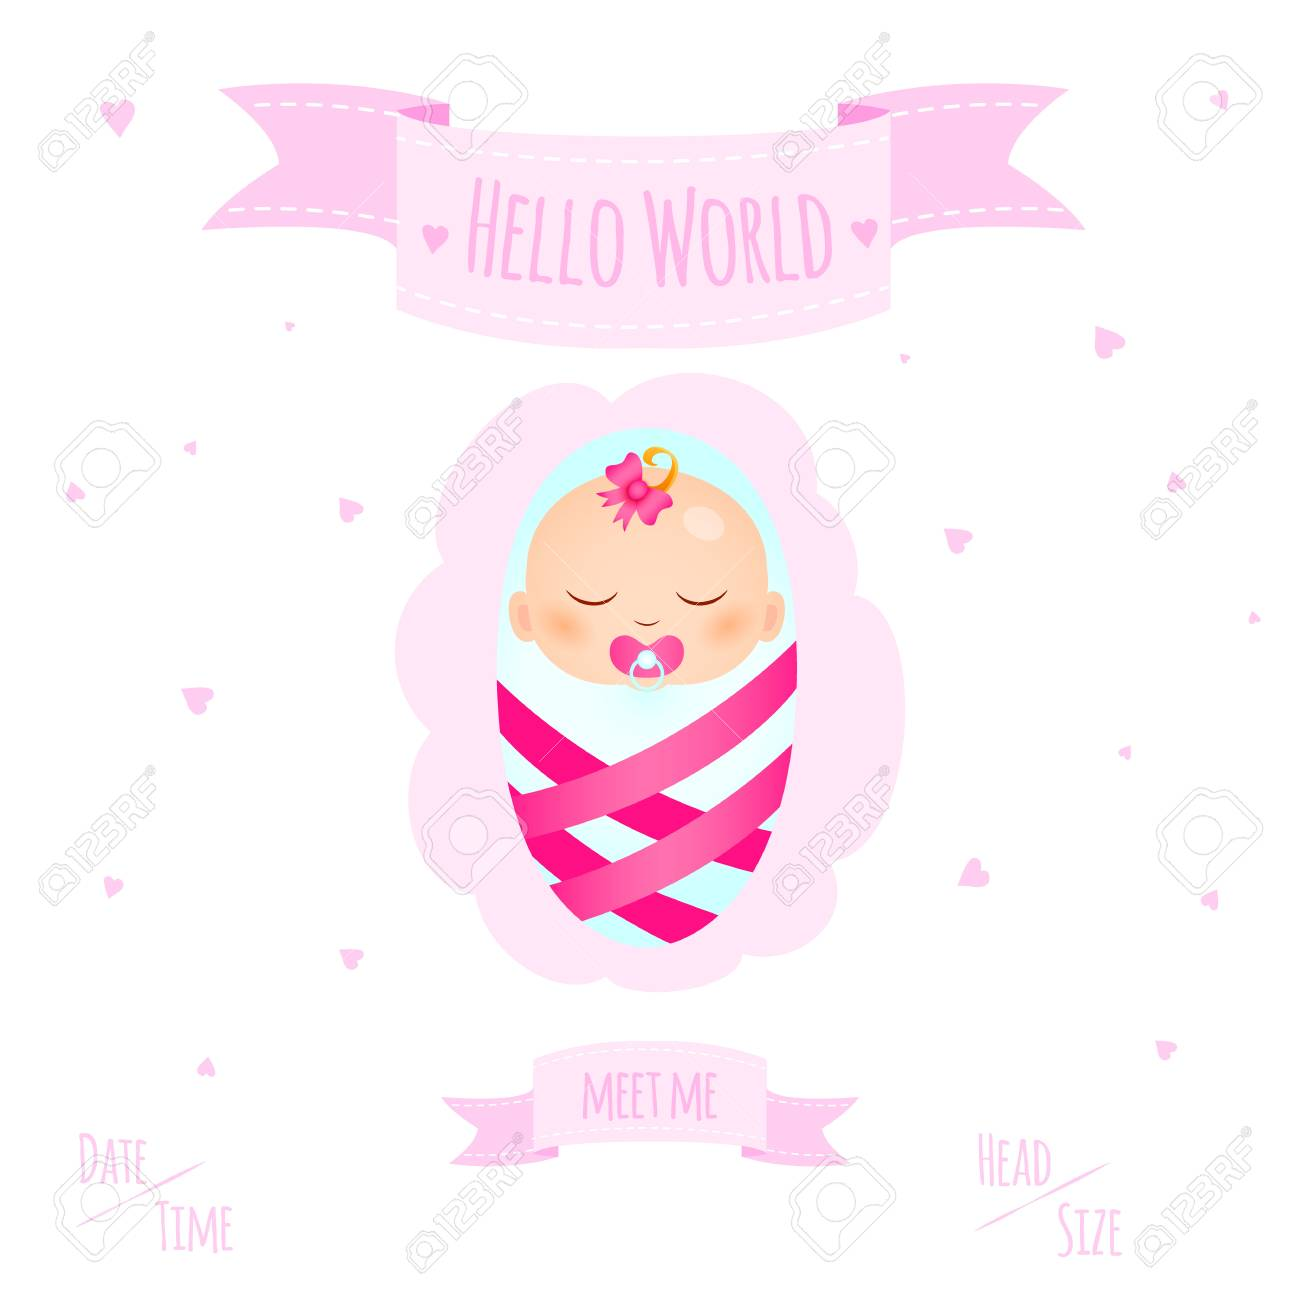 New child born baby newborn greeting card with girl kid in diapers new child born baby newborn greeting card with girl kid in diapers words hello world m4hsunfo